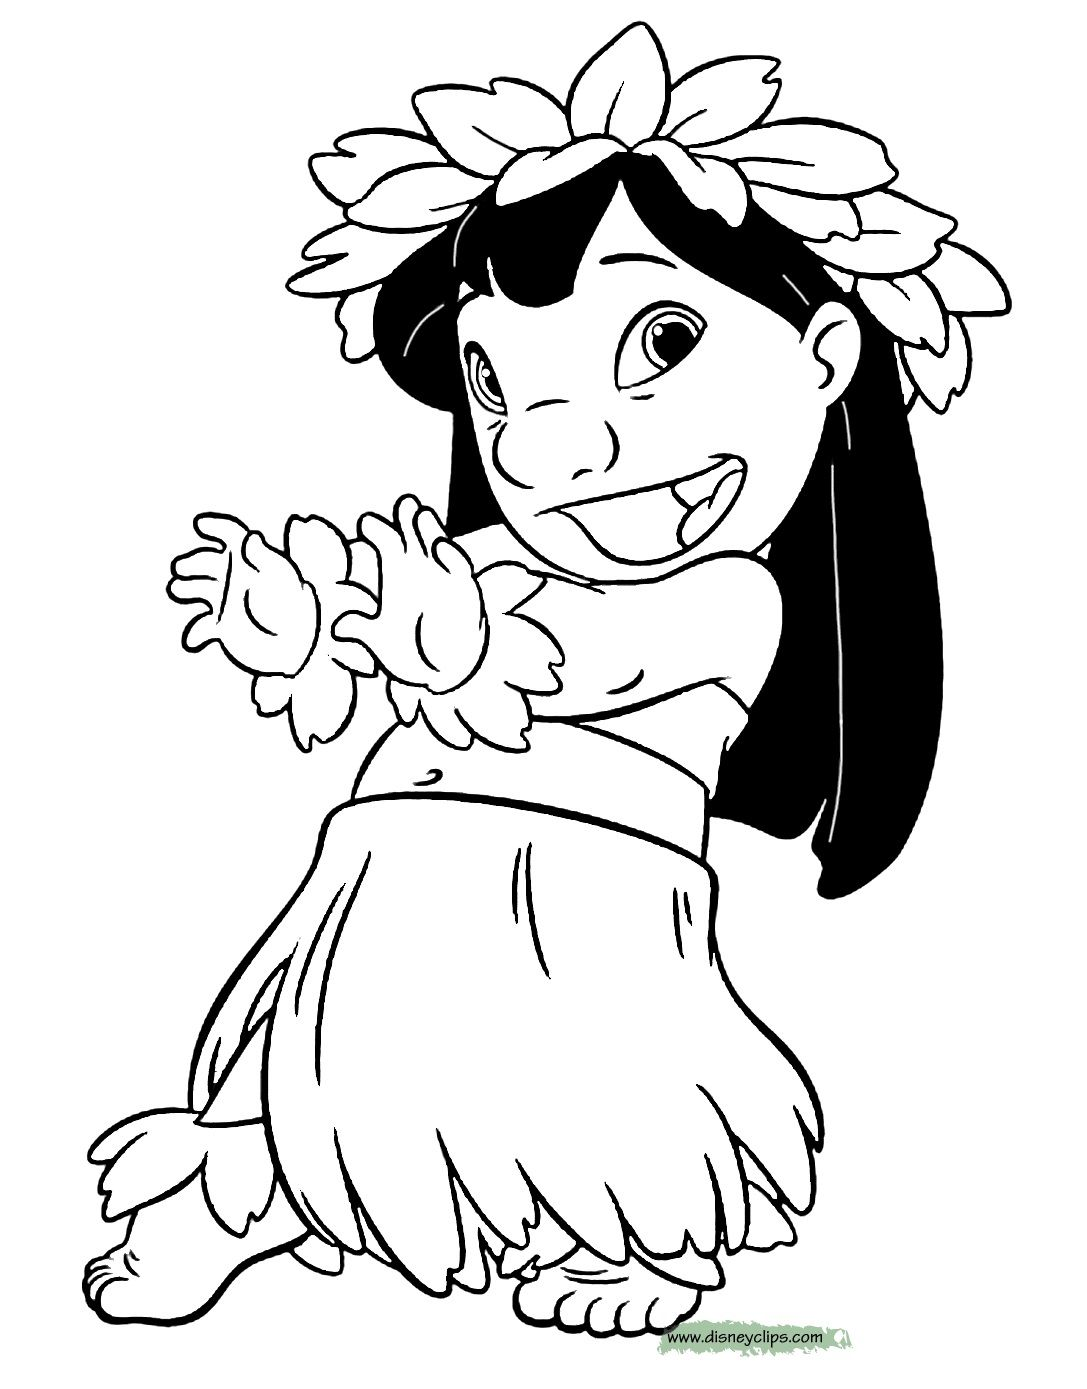 Lilo & Stitch Coloring Page Disney coloring pages